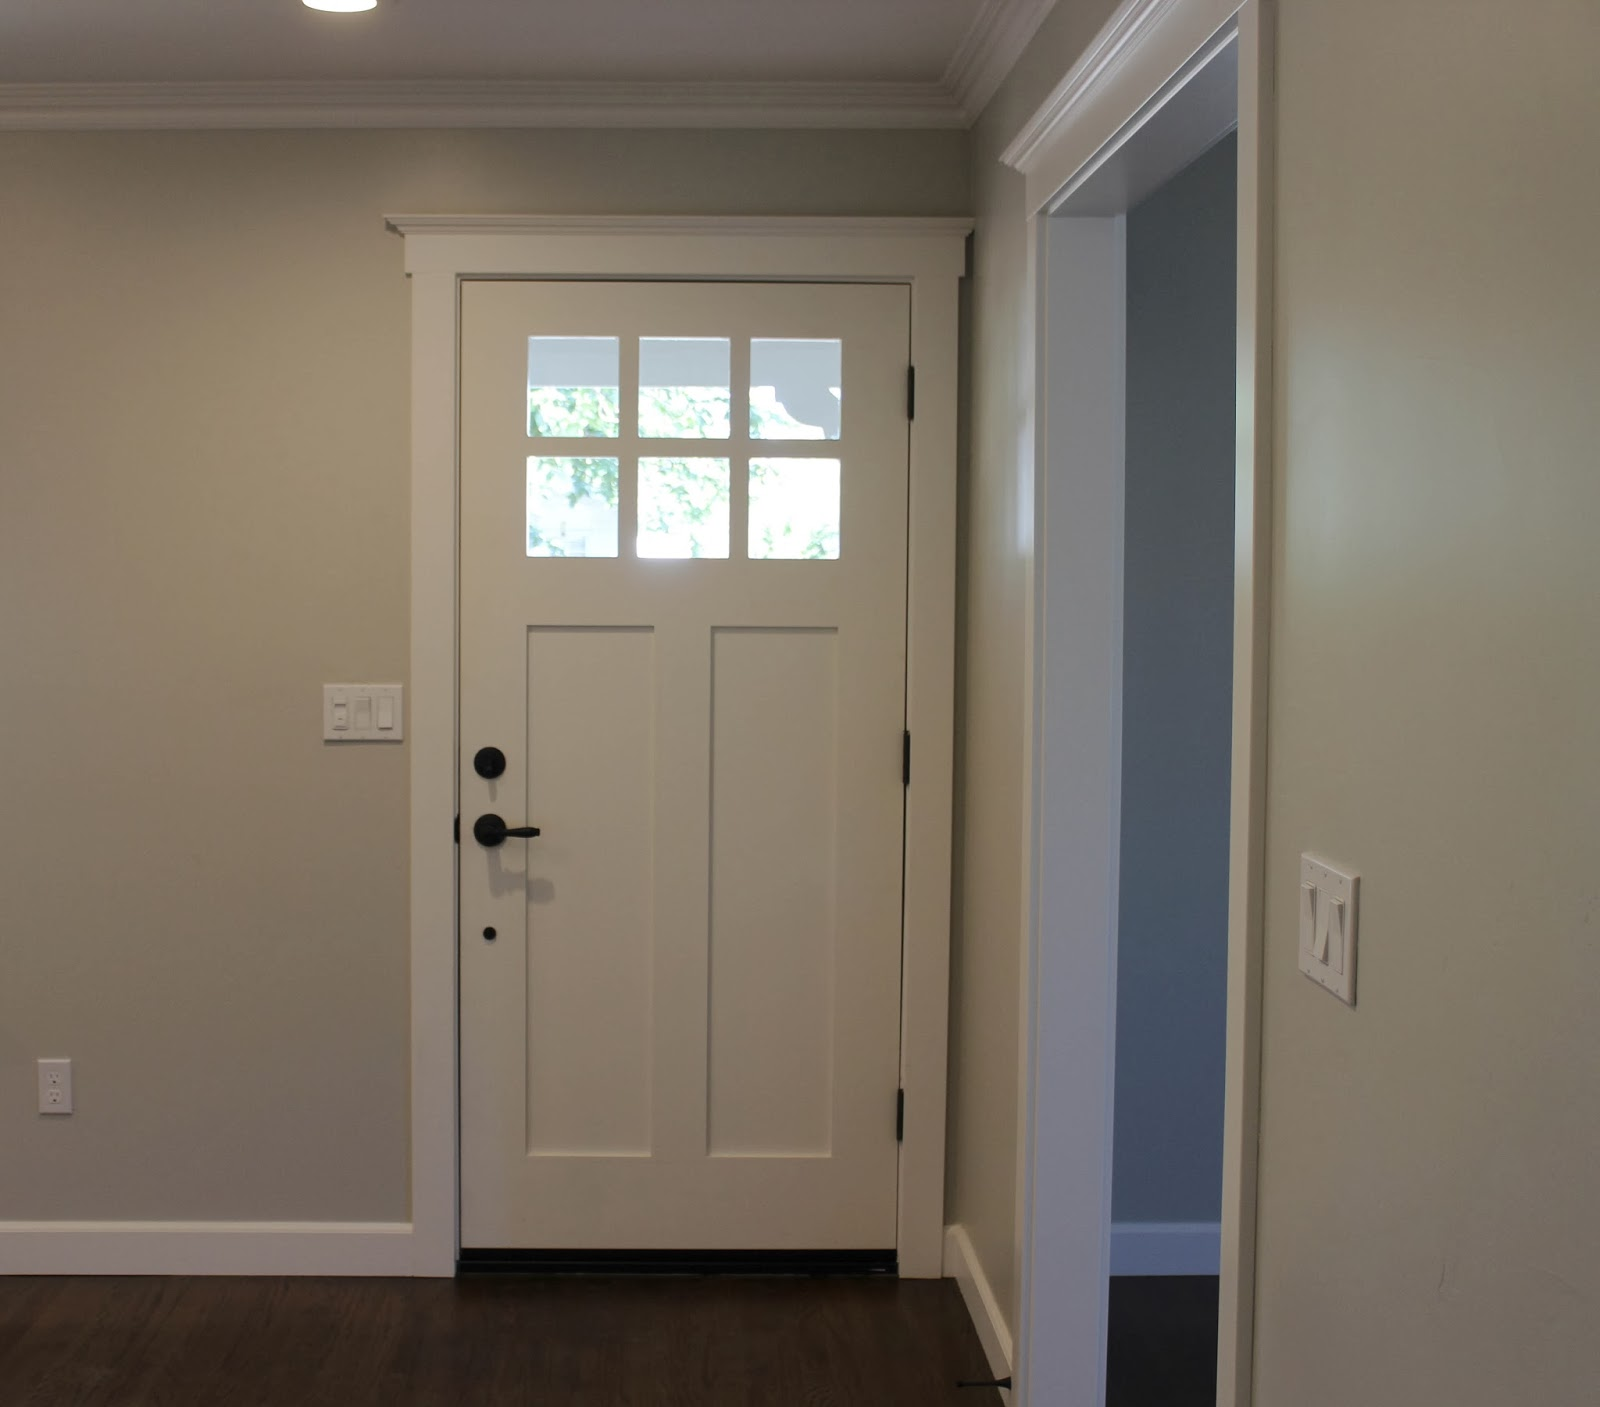 Traditional door casing styles vs contemporary door casing for Contemporary exterior window trim